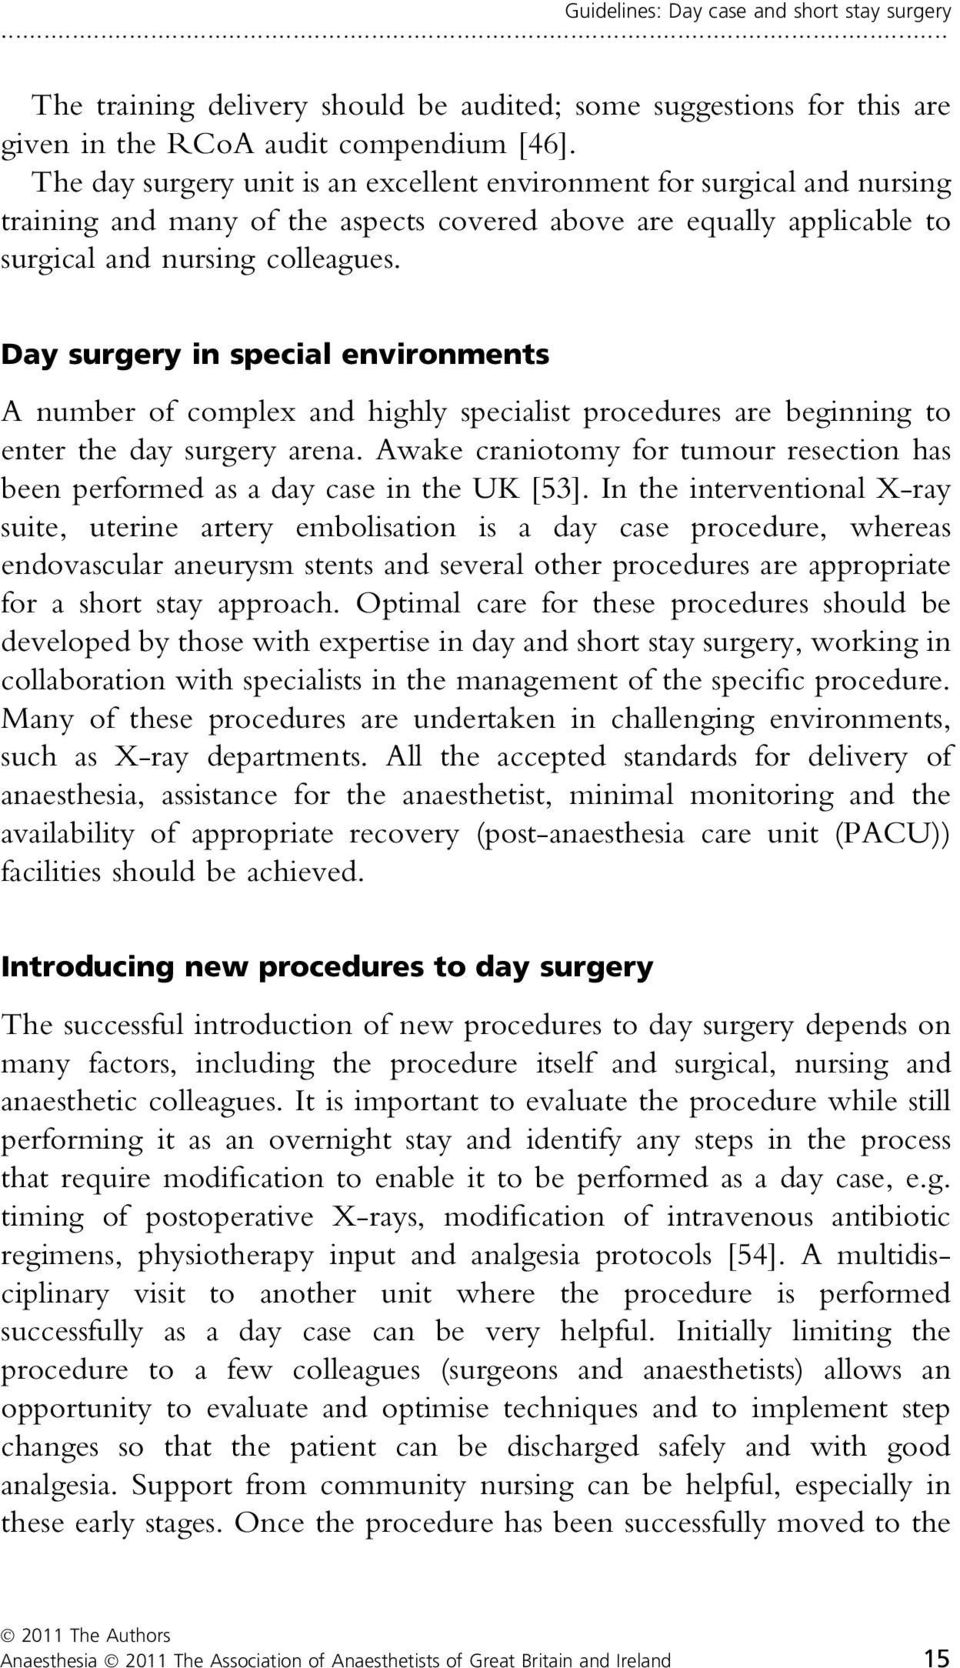 Day surgery in special environments A number of complex and highly specialist procedures are beginning to enter the day surgery arena.